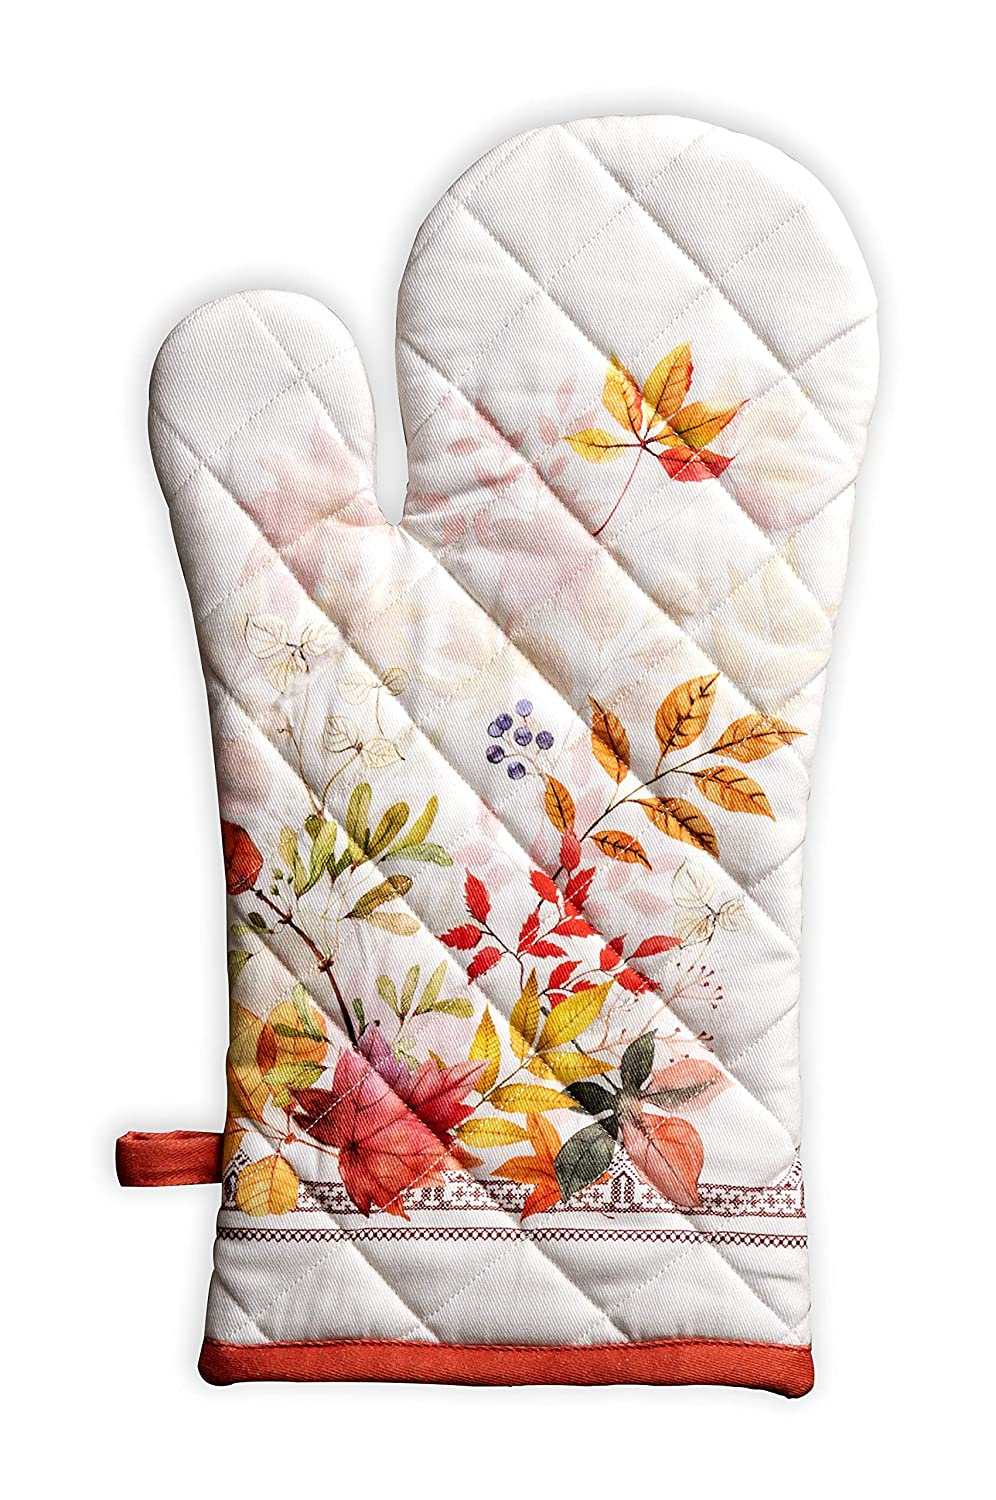 Maison d' Hermine Amarante 100% Cotton Oven Mitt 7.5 Inch by 13 Inch. Perfect for Thanksgiving and Christmas